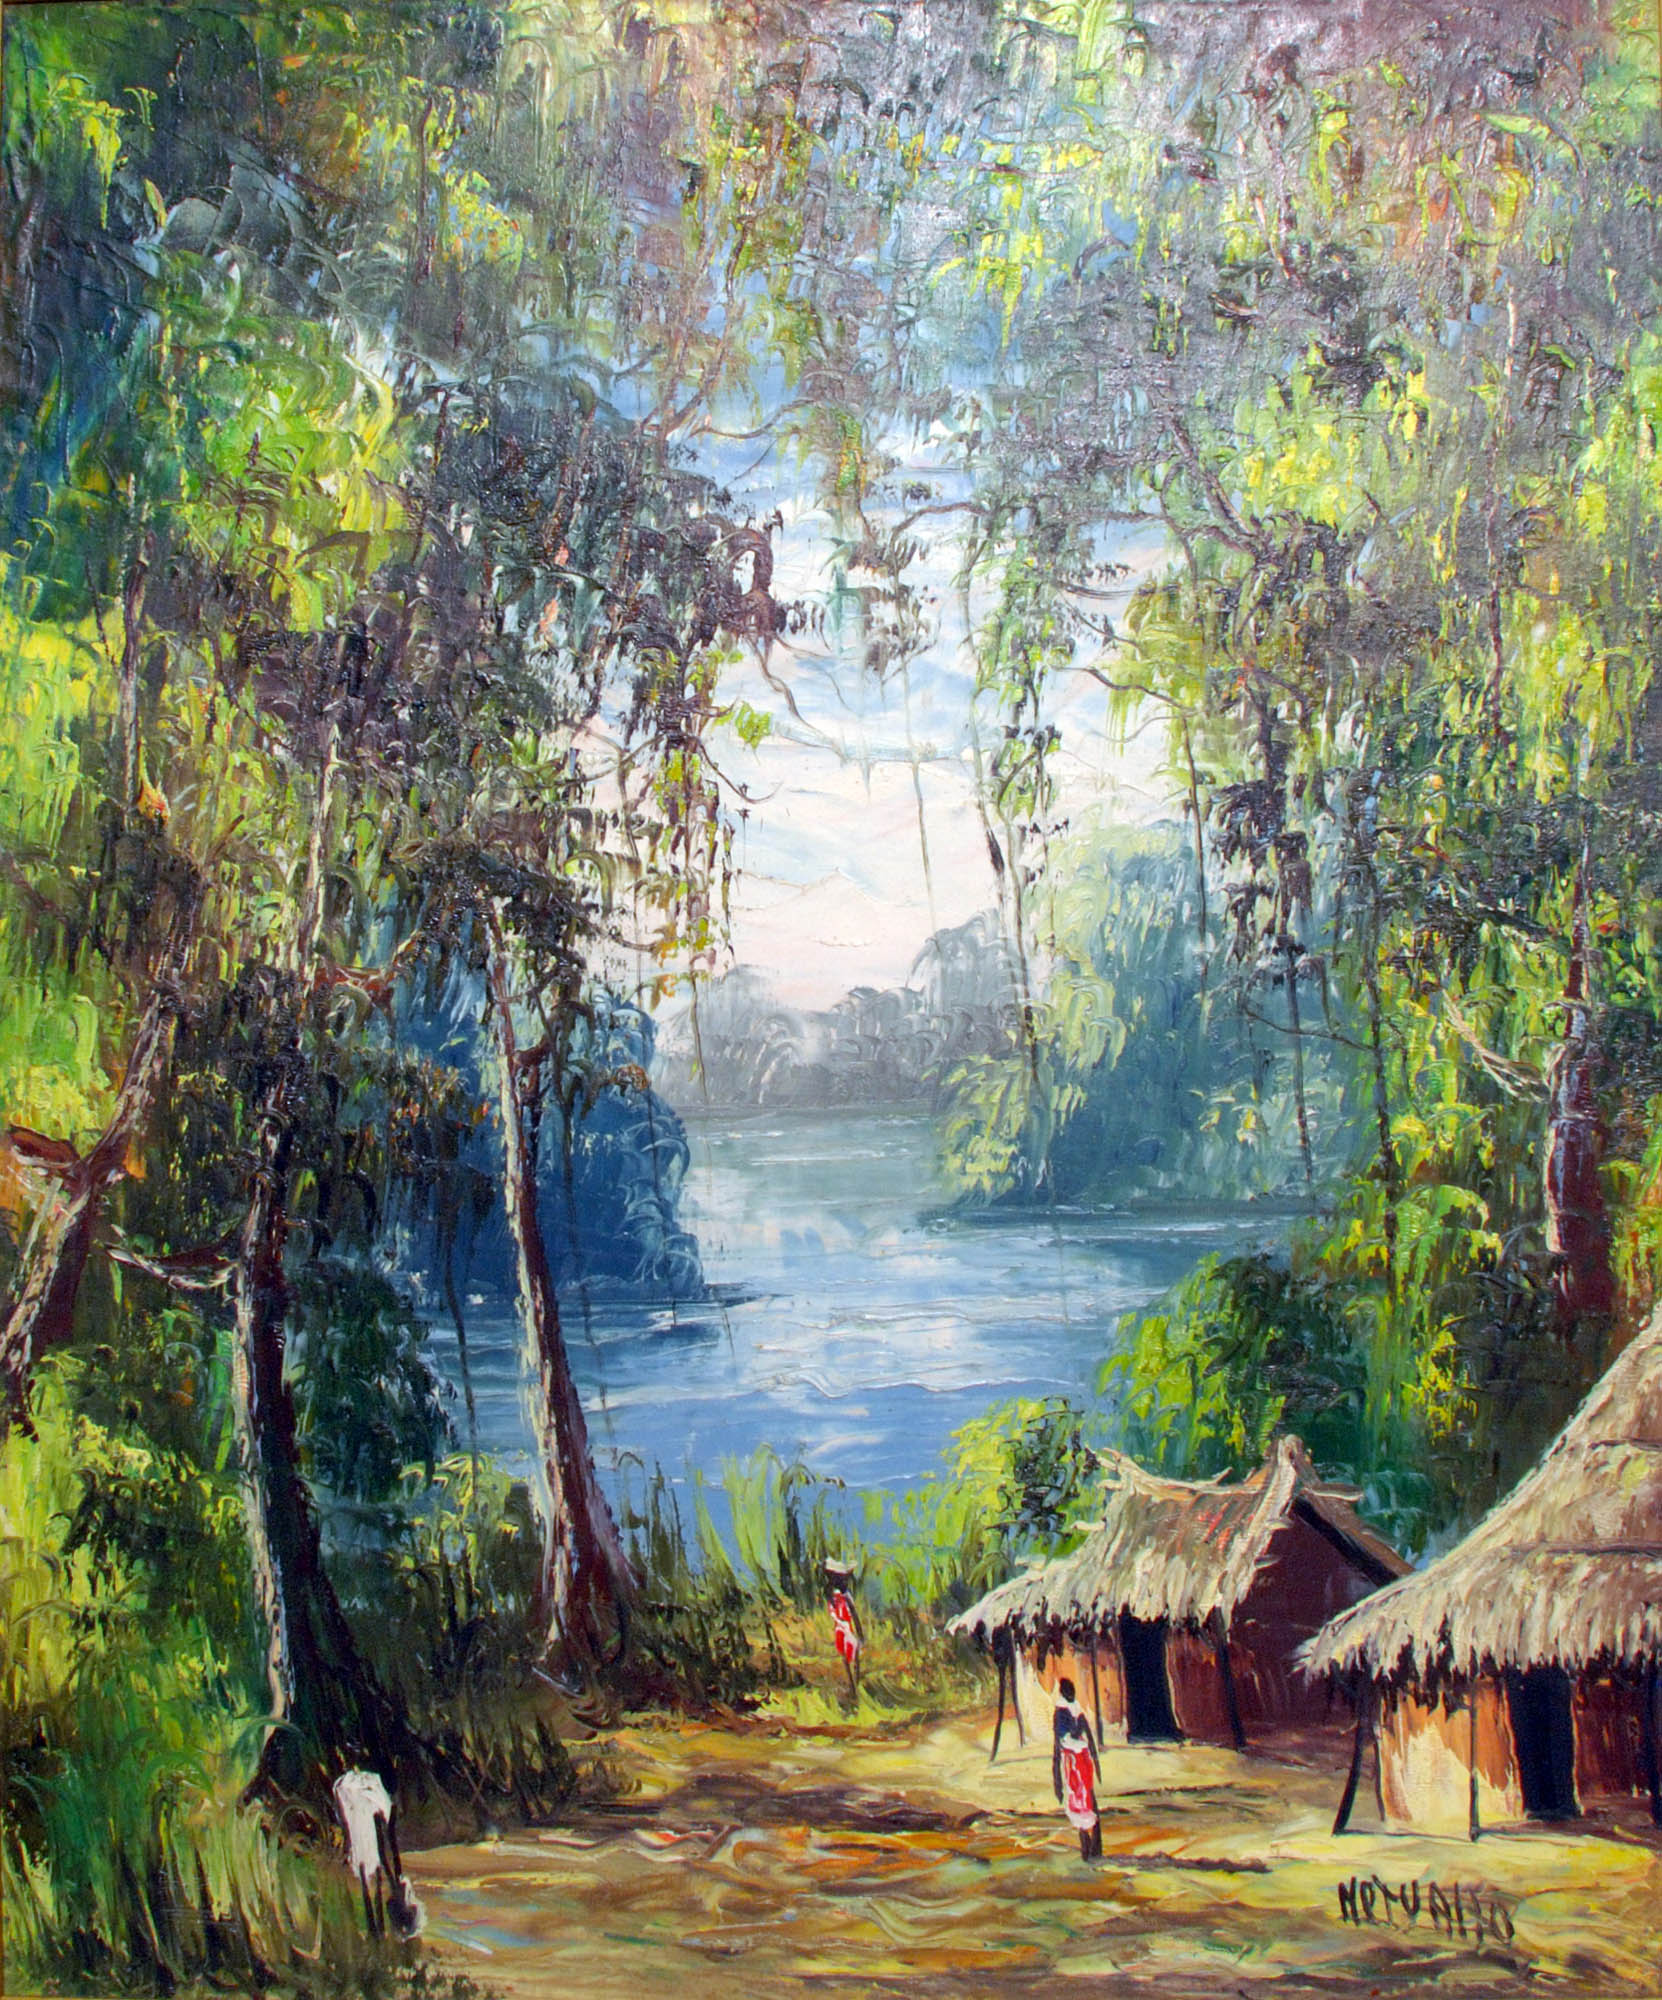 Framed acrylic painting depicting a village by a river in a forest setting.